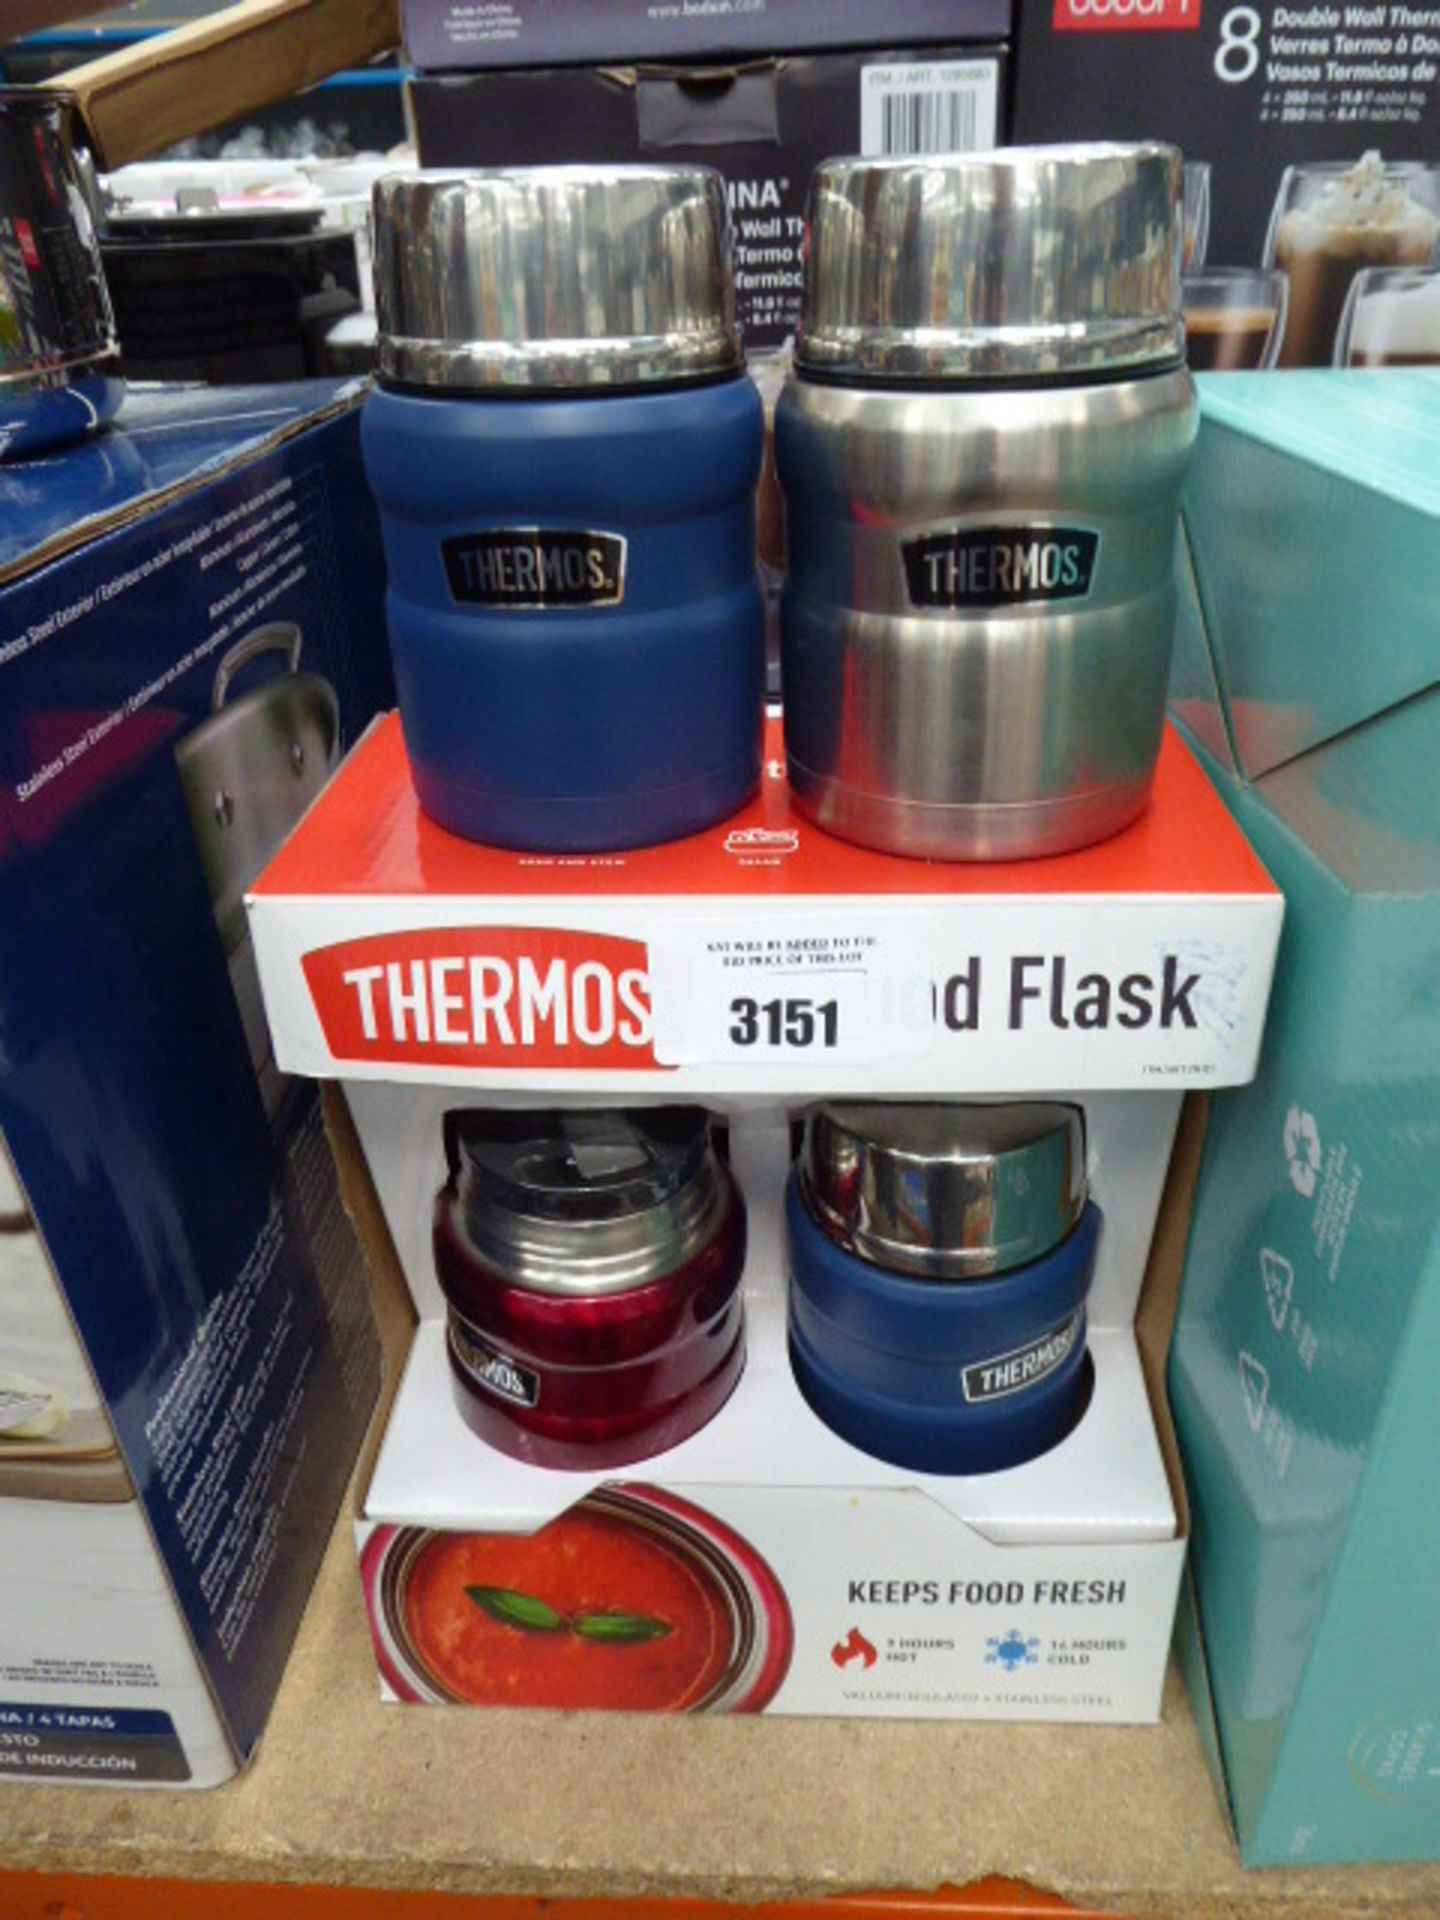 4 Thermos food containers plus stemless wine glasses